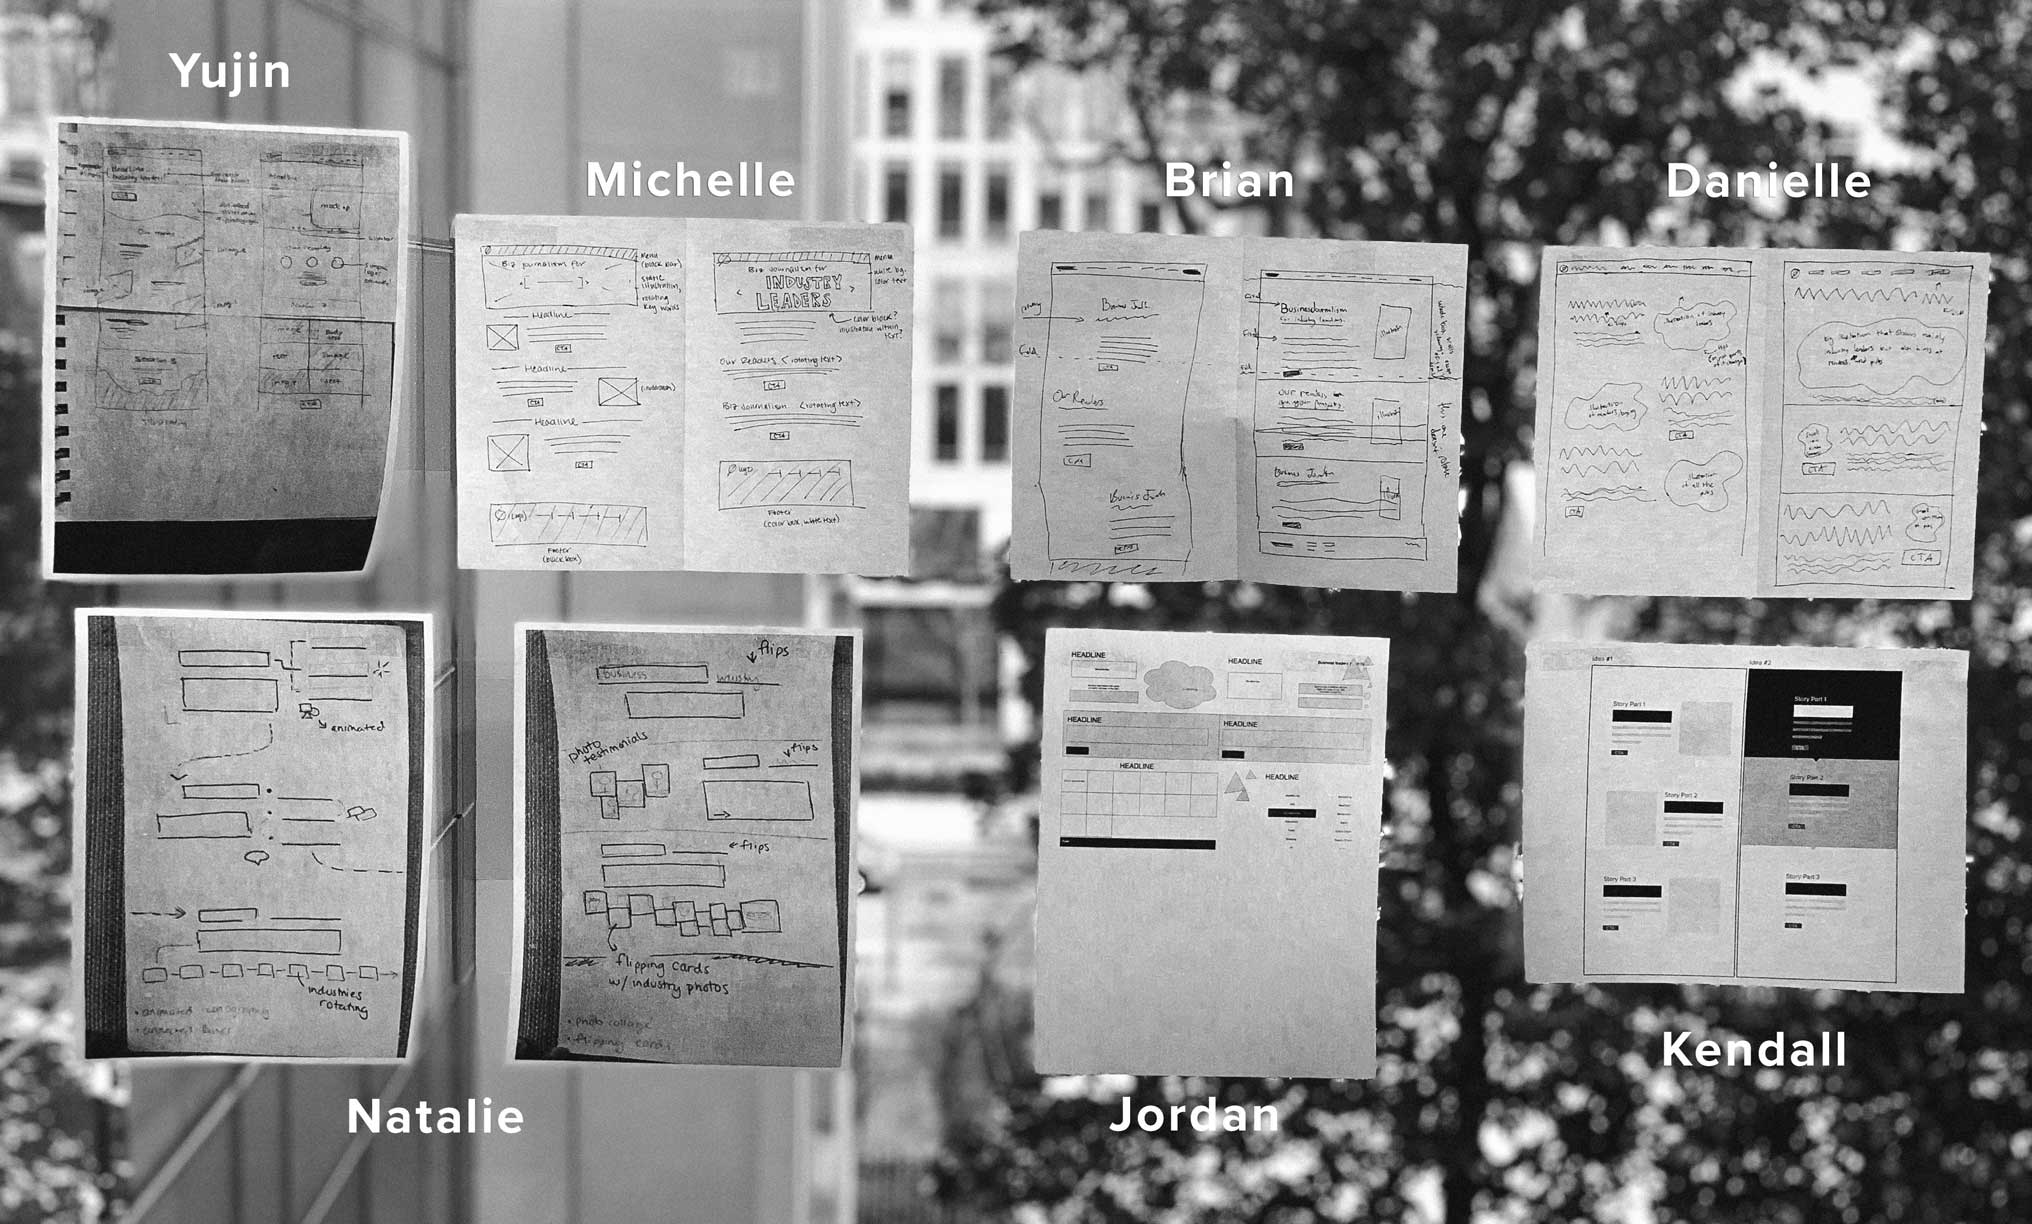 The team's sketches from the design sprint.